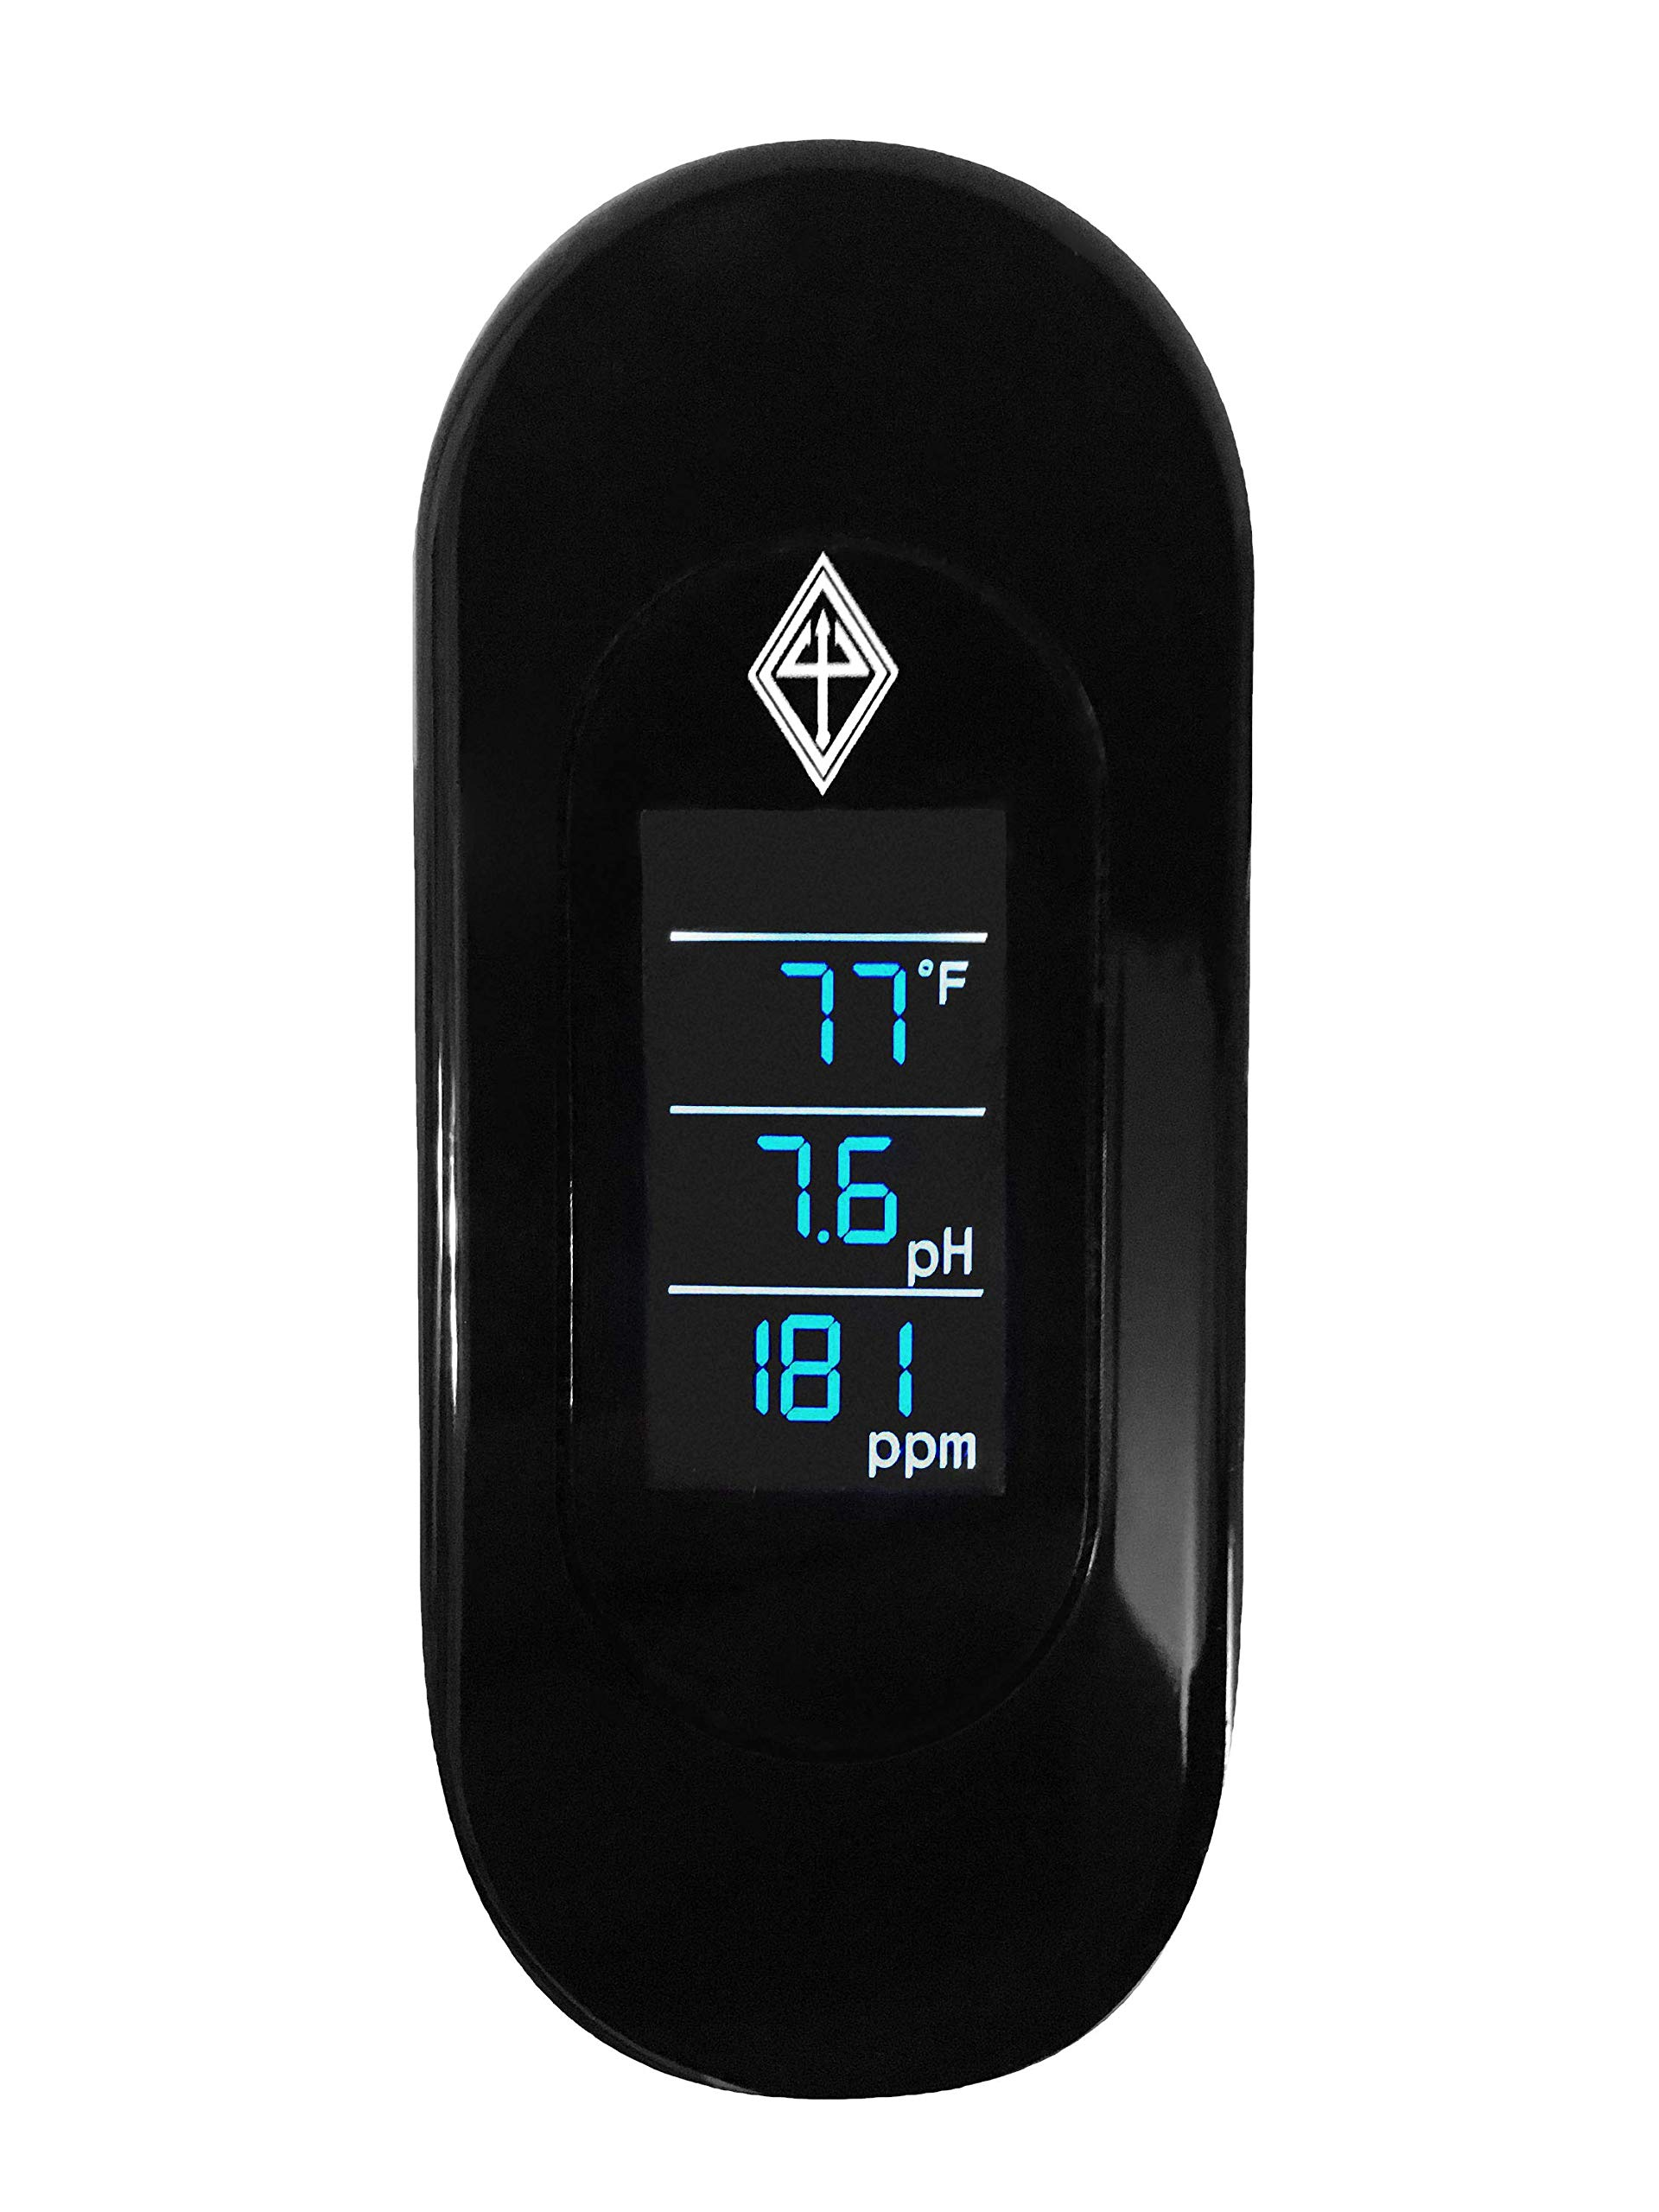 Atlantis Aquatics 3 in 1 Aquarium Meter [Temp, pH, TDS] Clamps to Fish Tank Provides Real Time Data on Aquarium Health- Fahrenheit/Celsius Thermometer, pH Meter, TDS Meter (Total Dissolved Solids) by Atlantis Aquatics